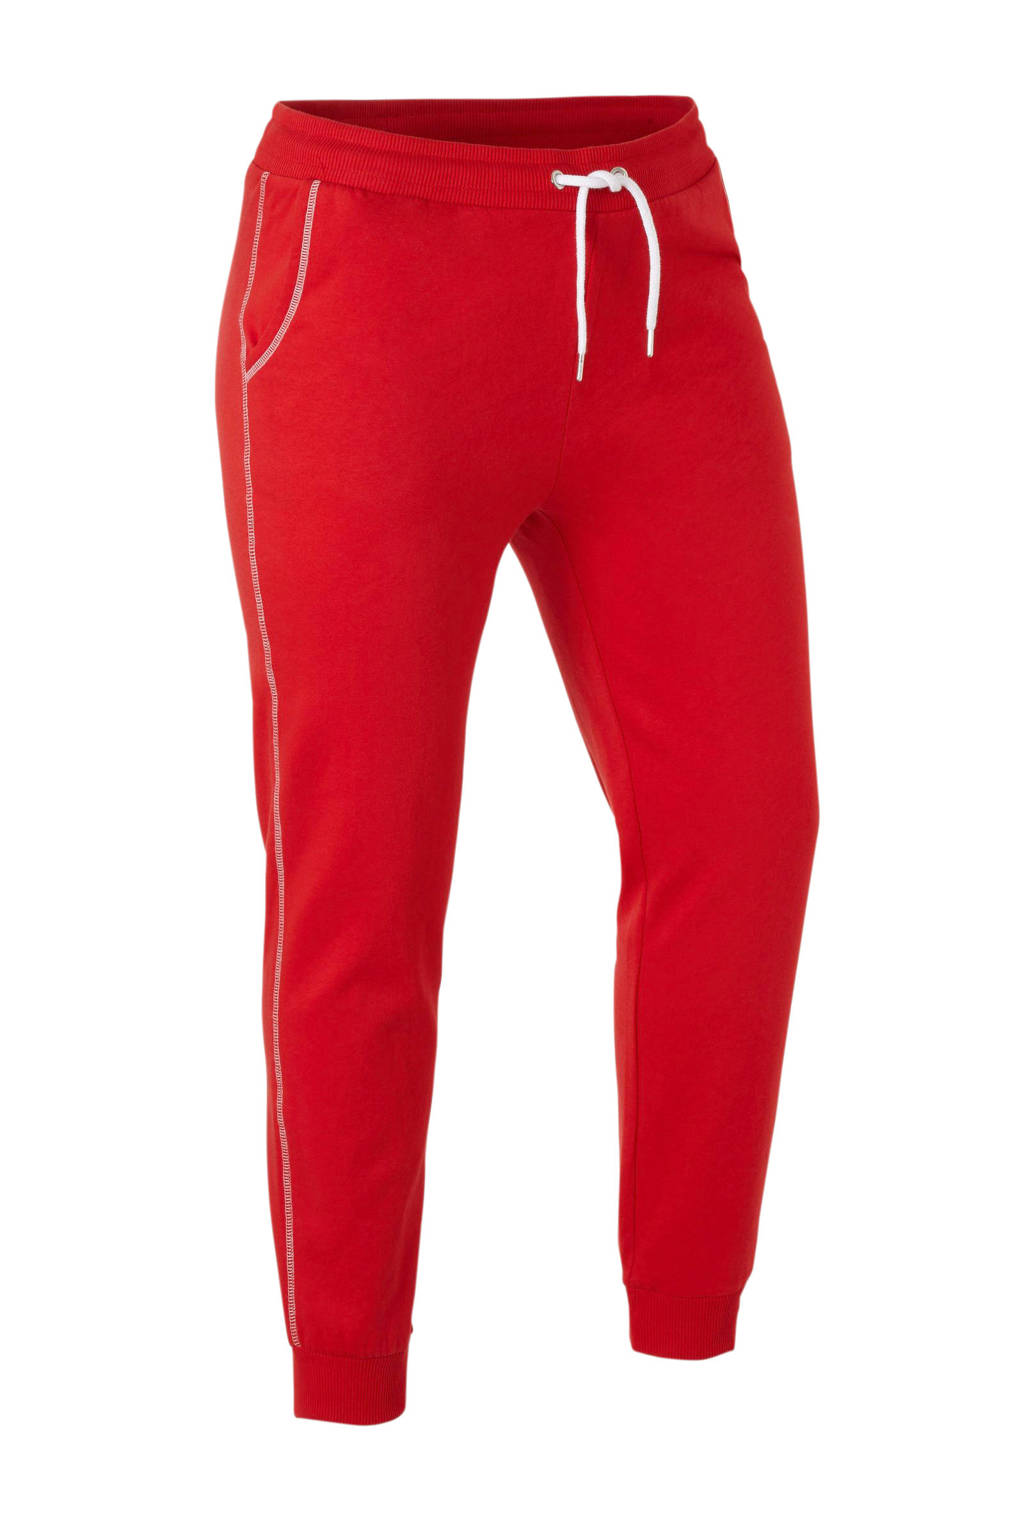 C&A XL Clockhouse loose fit joggingbroek rood, Rood